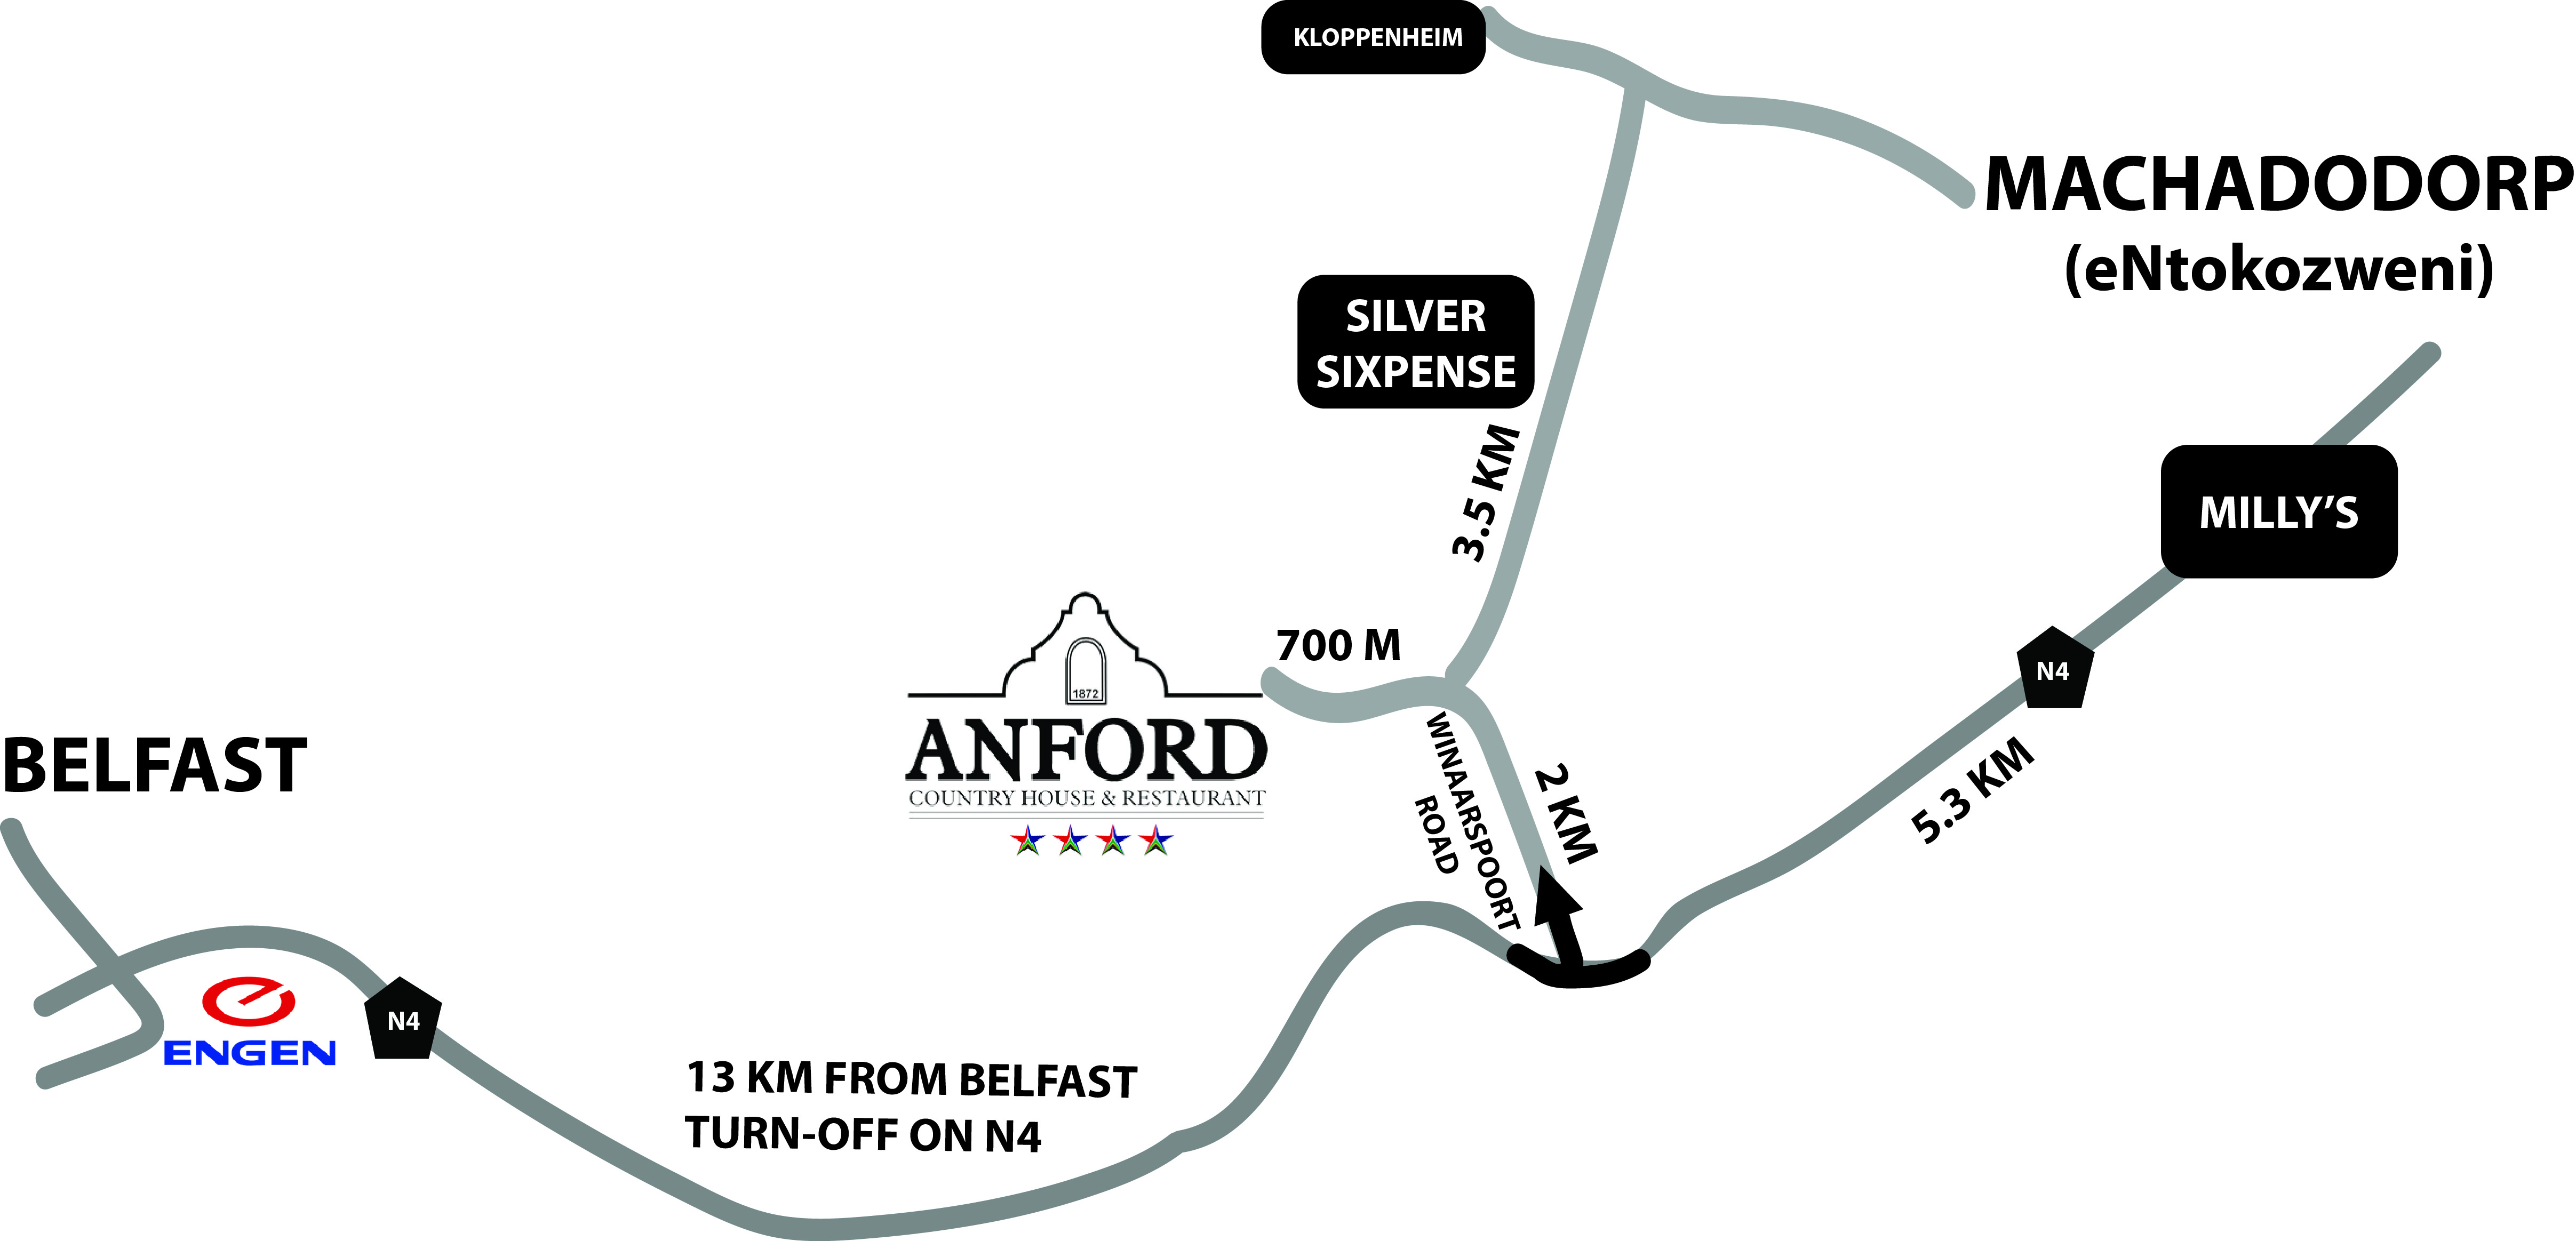 ANFORD MAP